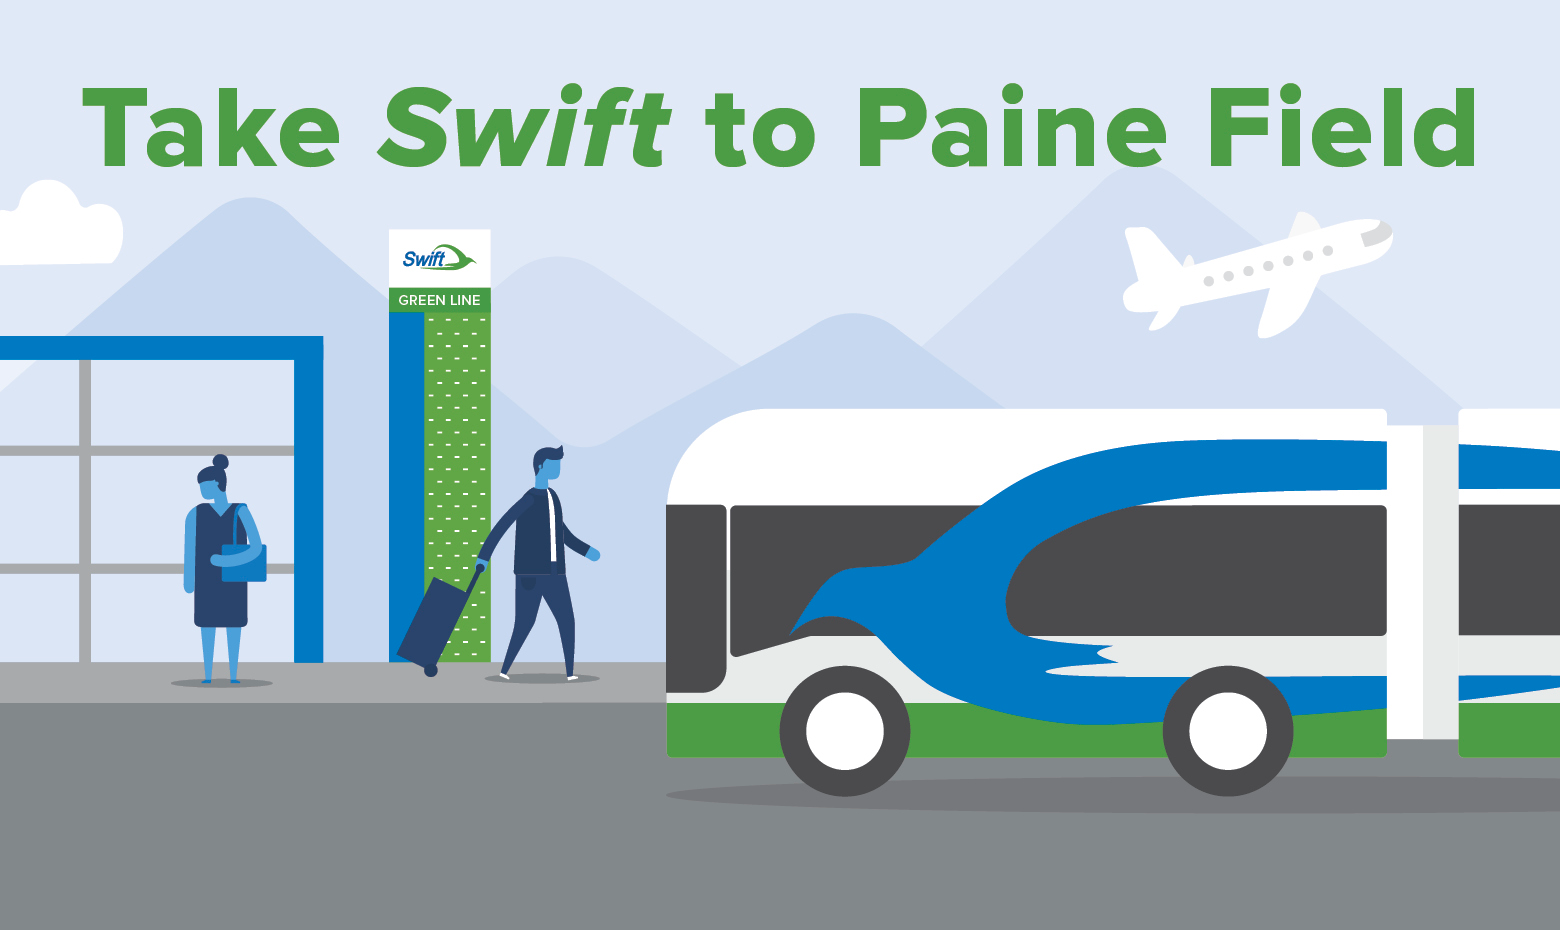 Take Swift to Paine Field Airport